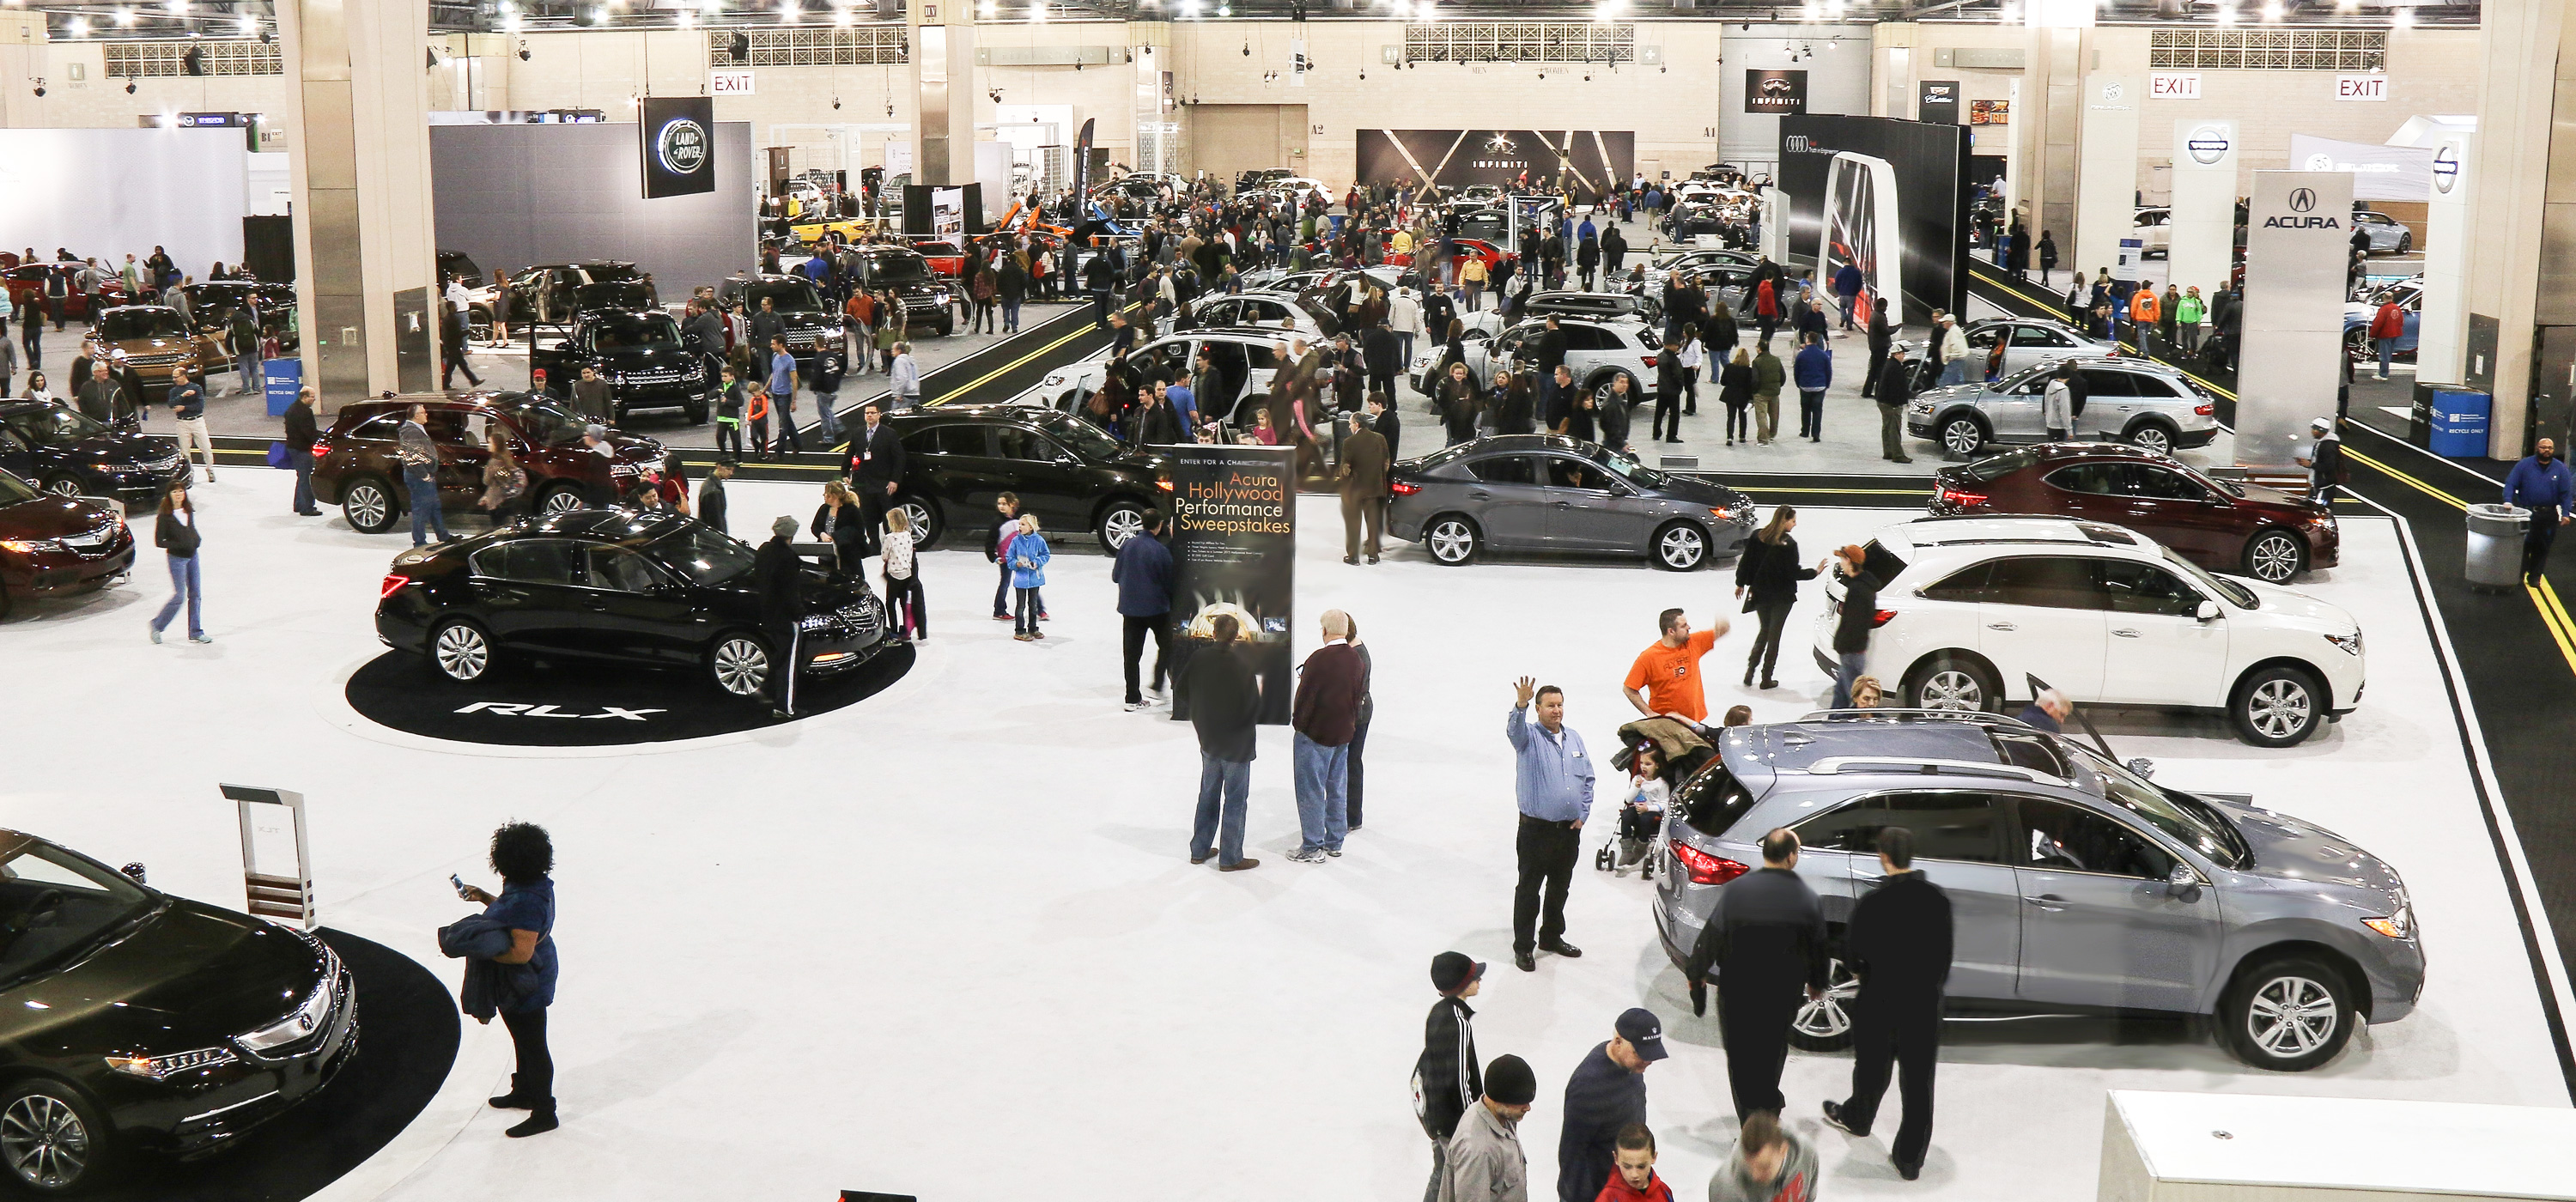 Automobile Dealers Association In East Norriton Behind The Wheel Of - How much are auto show tickets